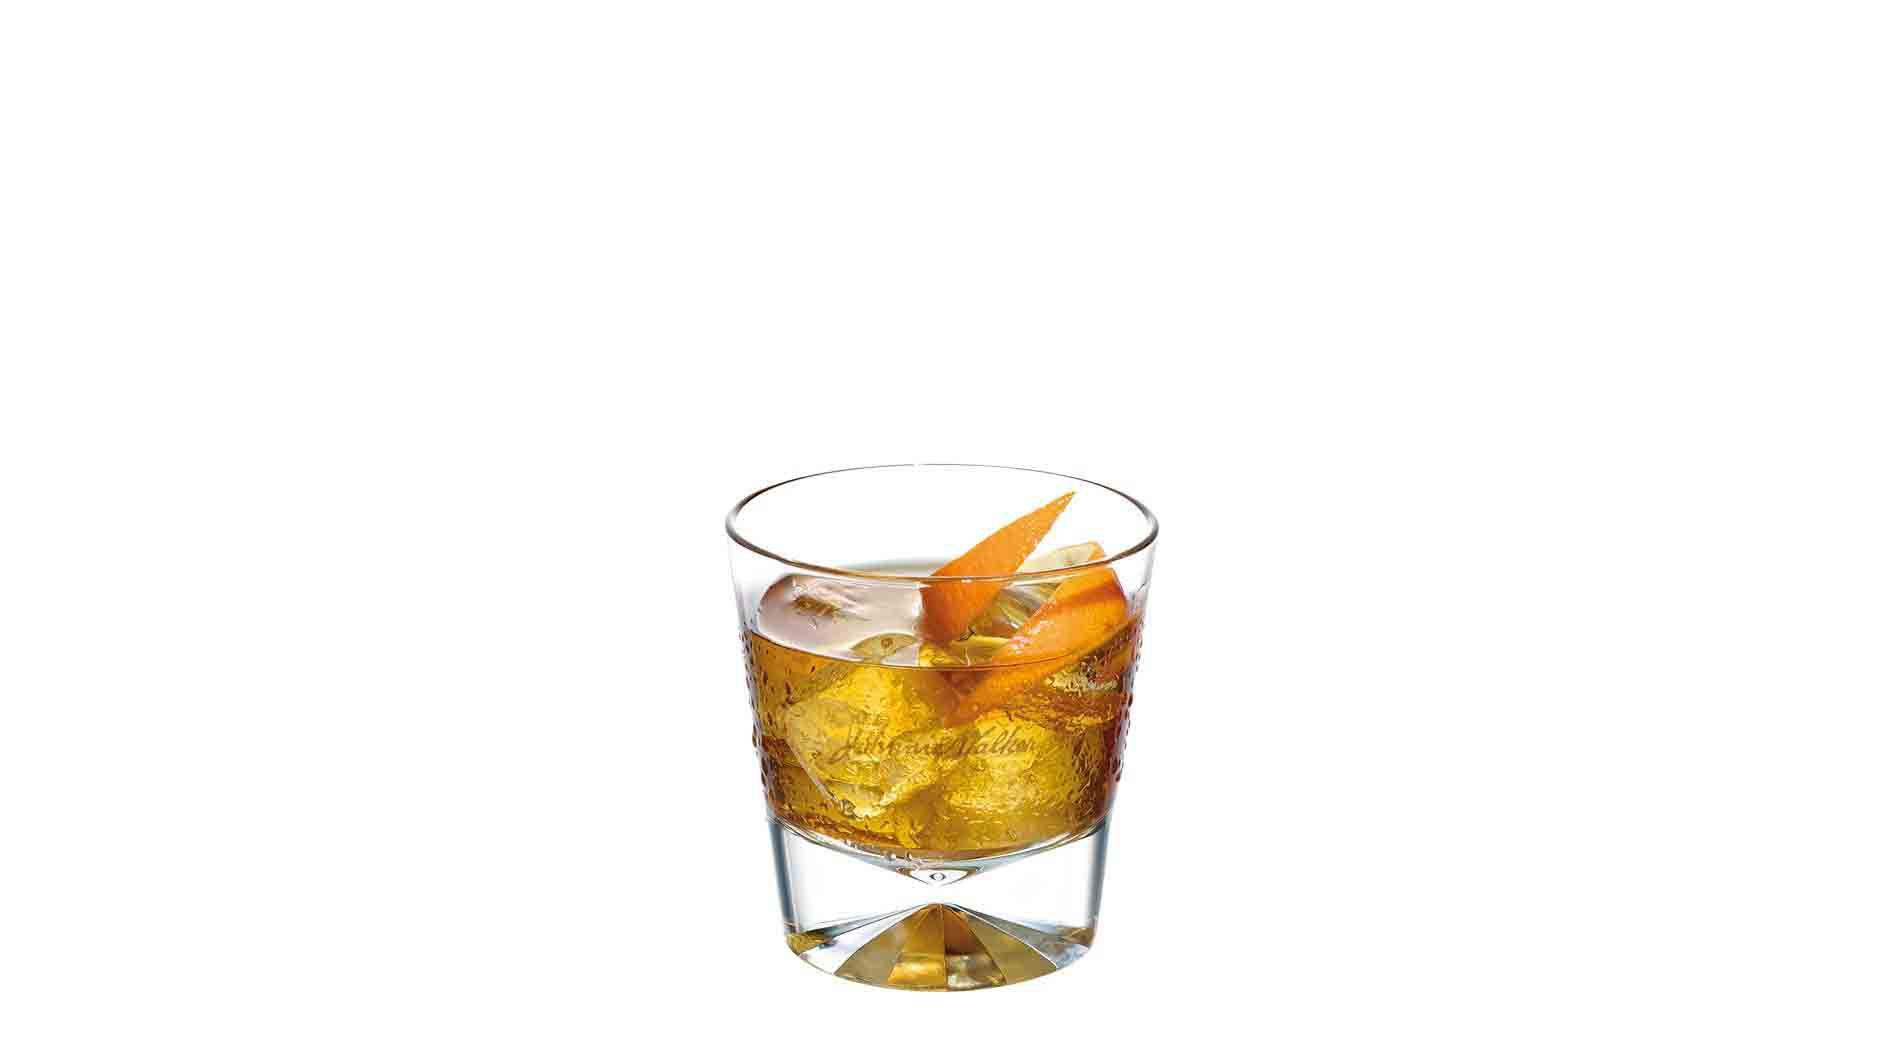 Gold Fashioned cocktail in a tumbler